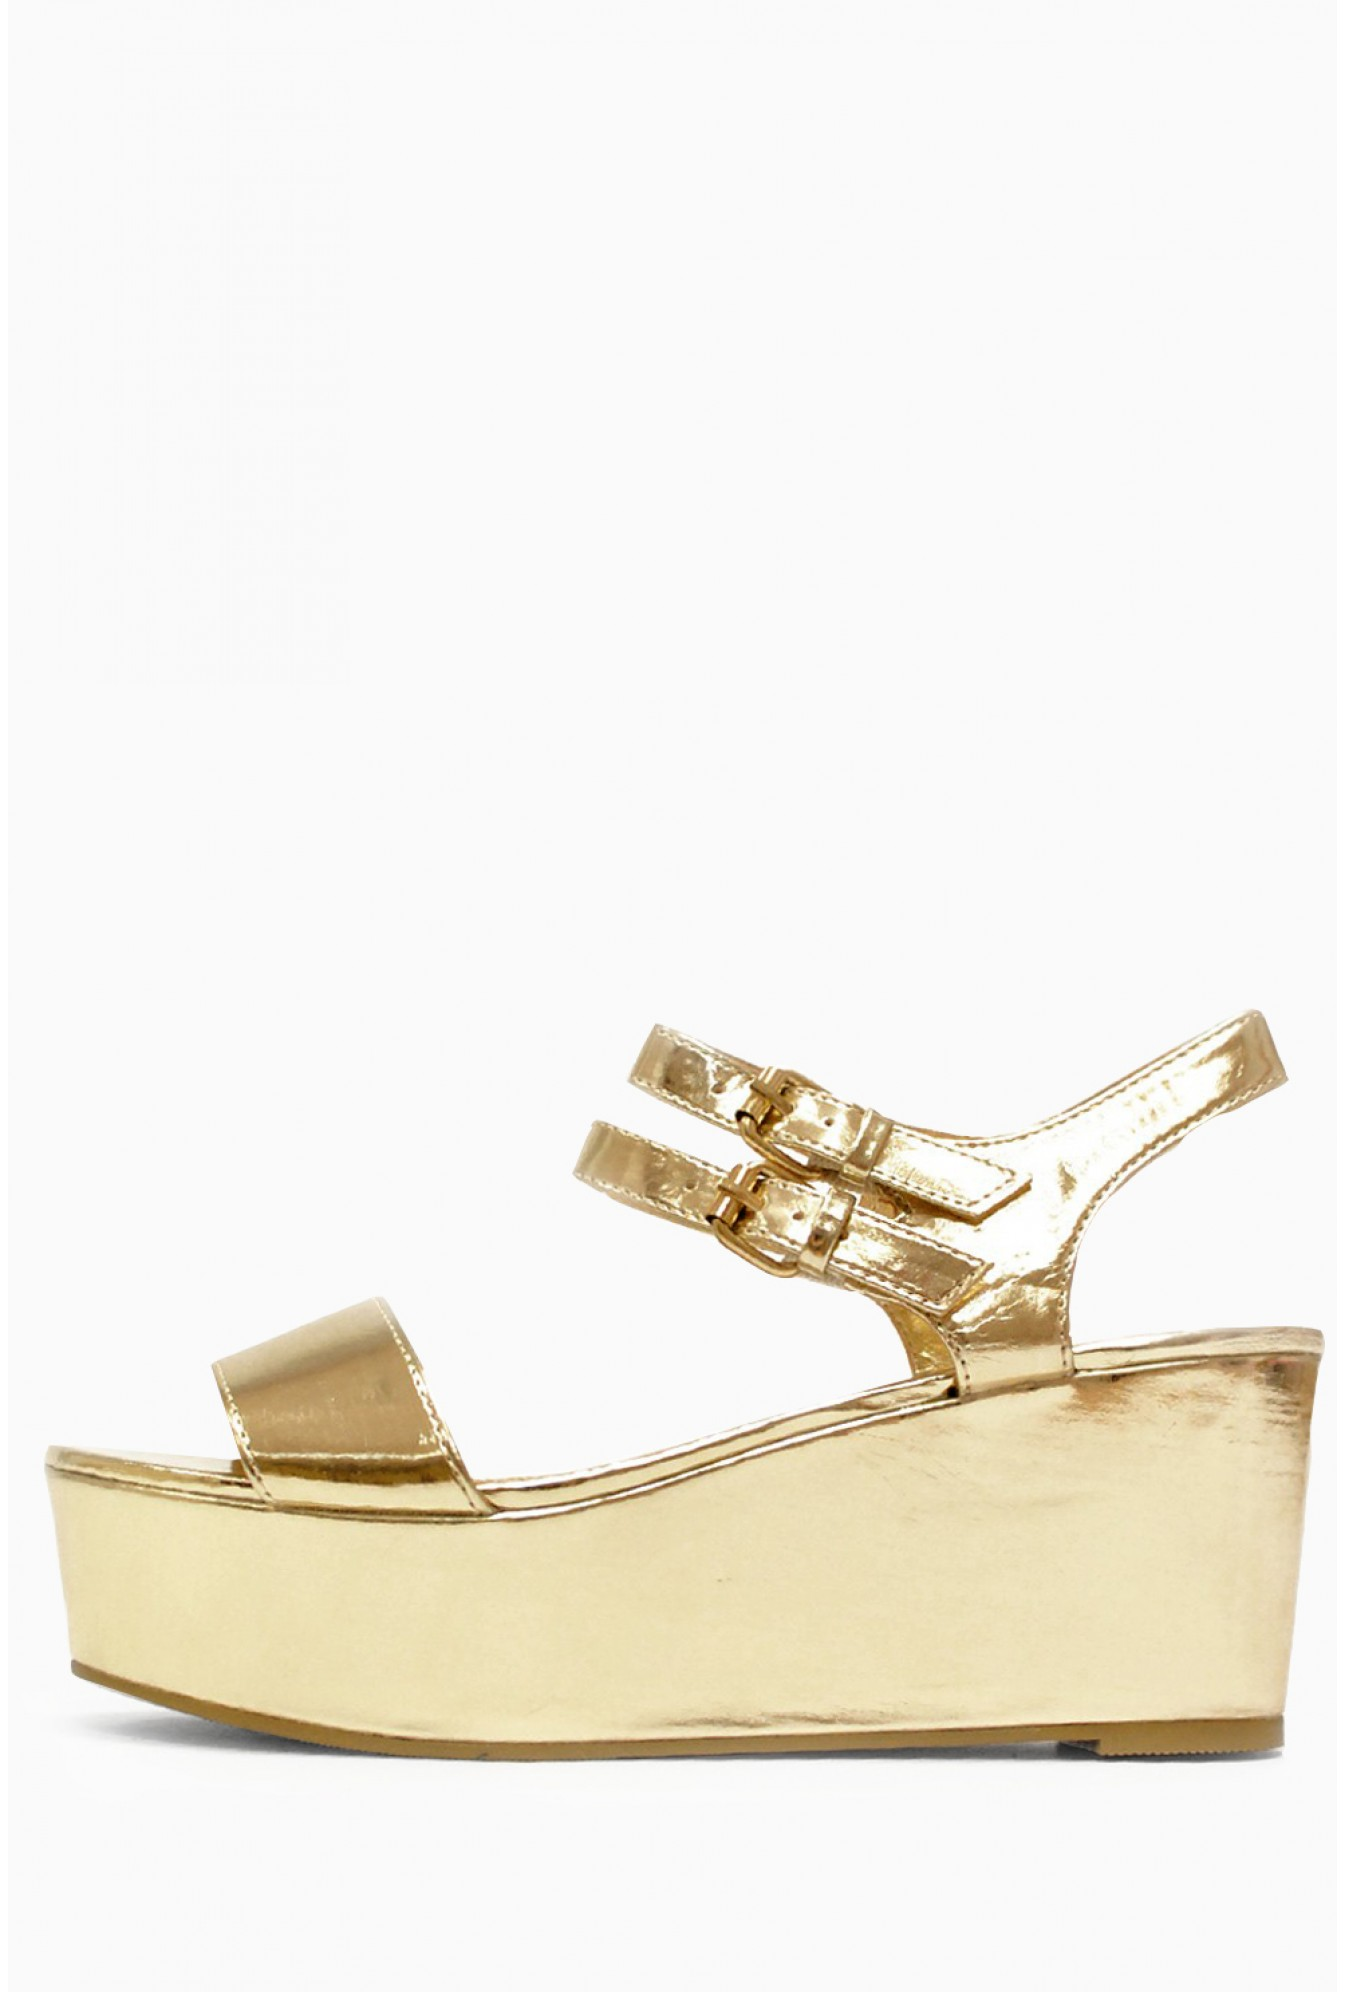 c8f2eb9890c1 More Views. Tara Strappy Wedge Sandals in Gold